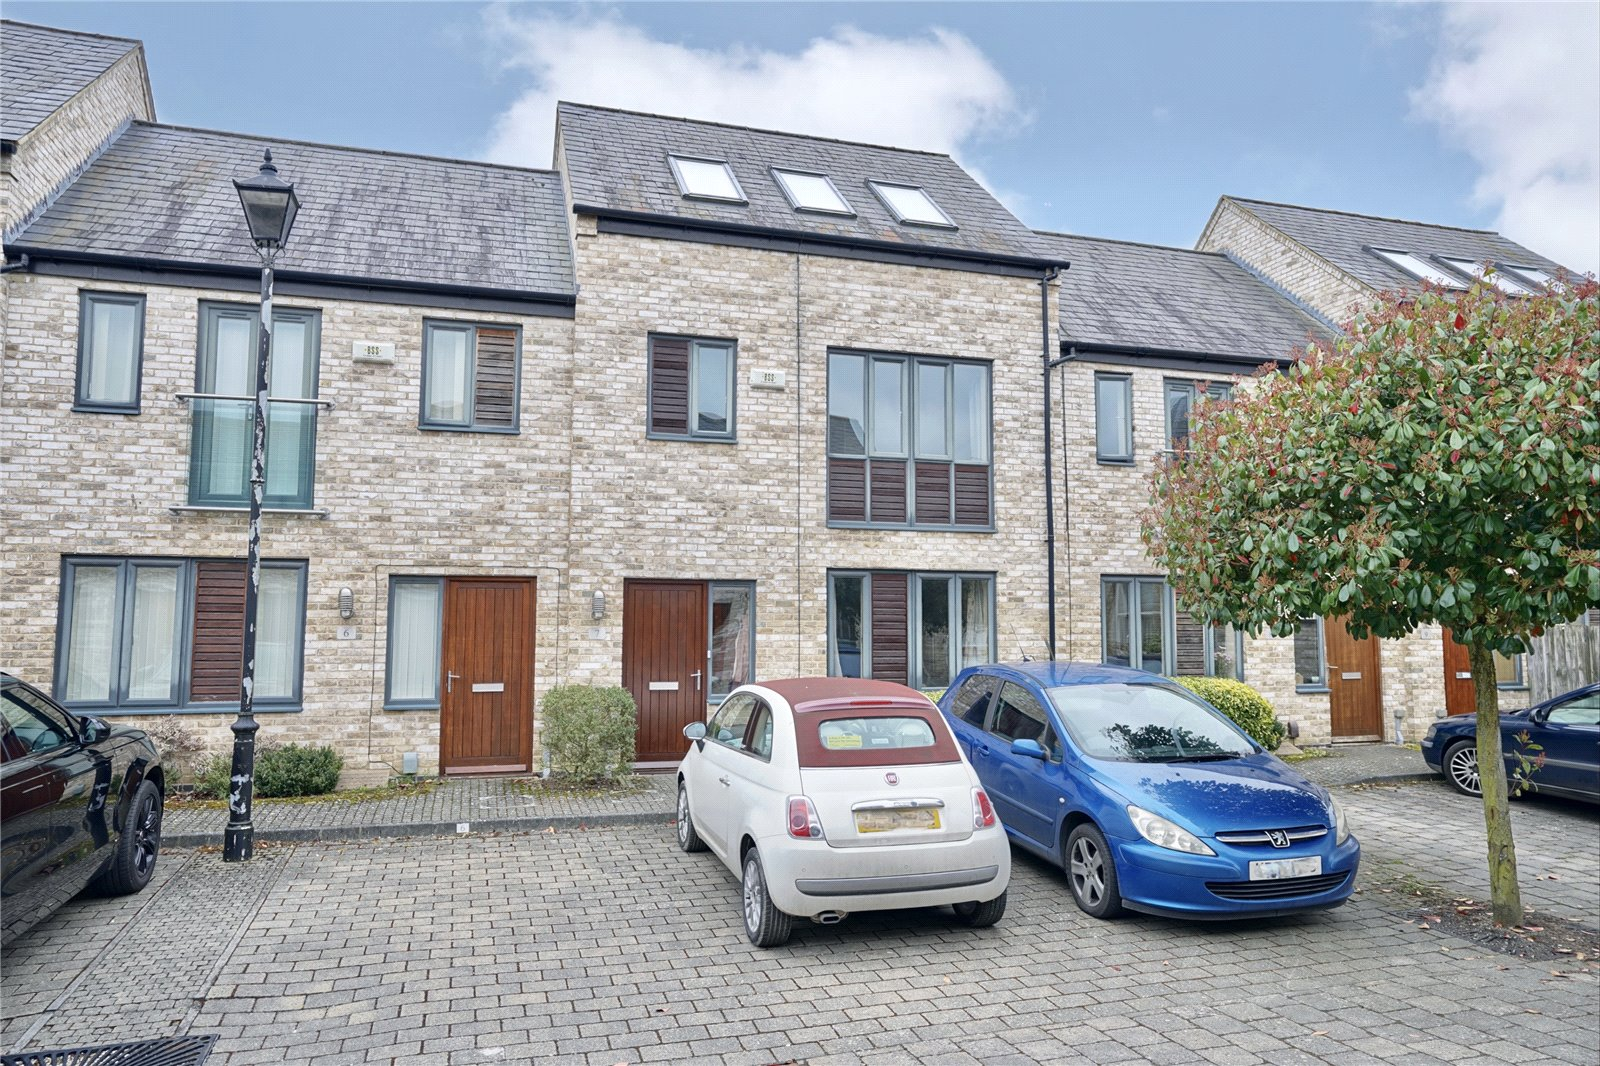 3 bed house for sale in St. Ives, PE27 5RP, PE27